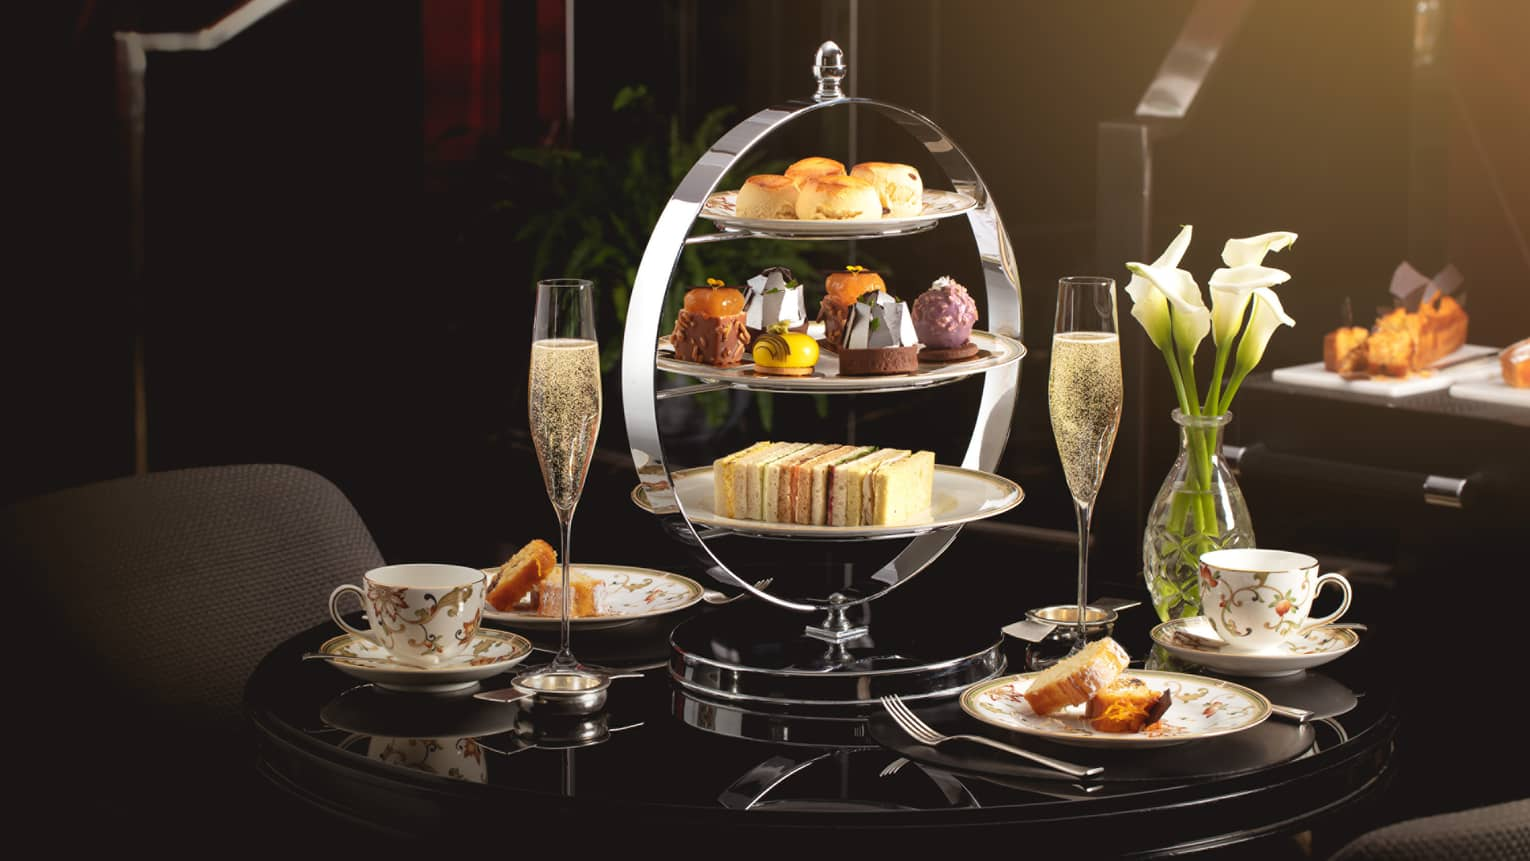 Afternoon tea tray with sweets, tea cups and Champagne on table